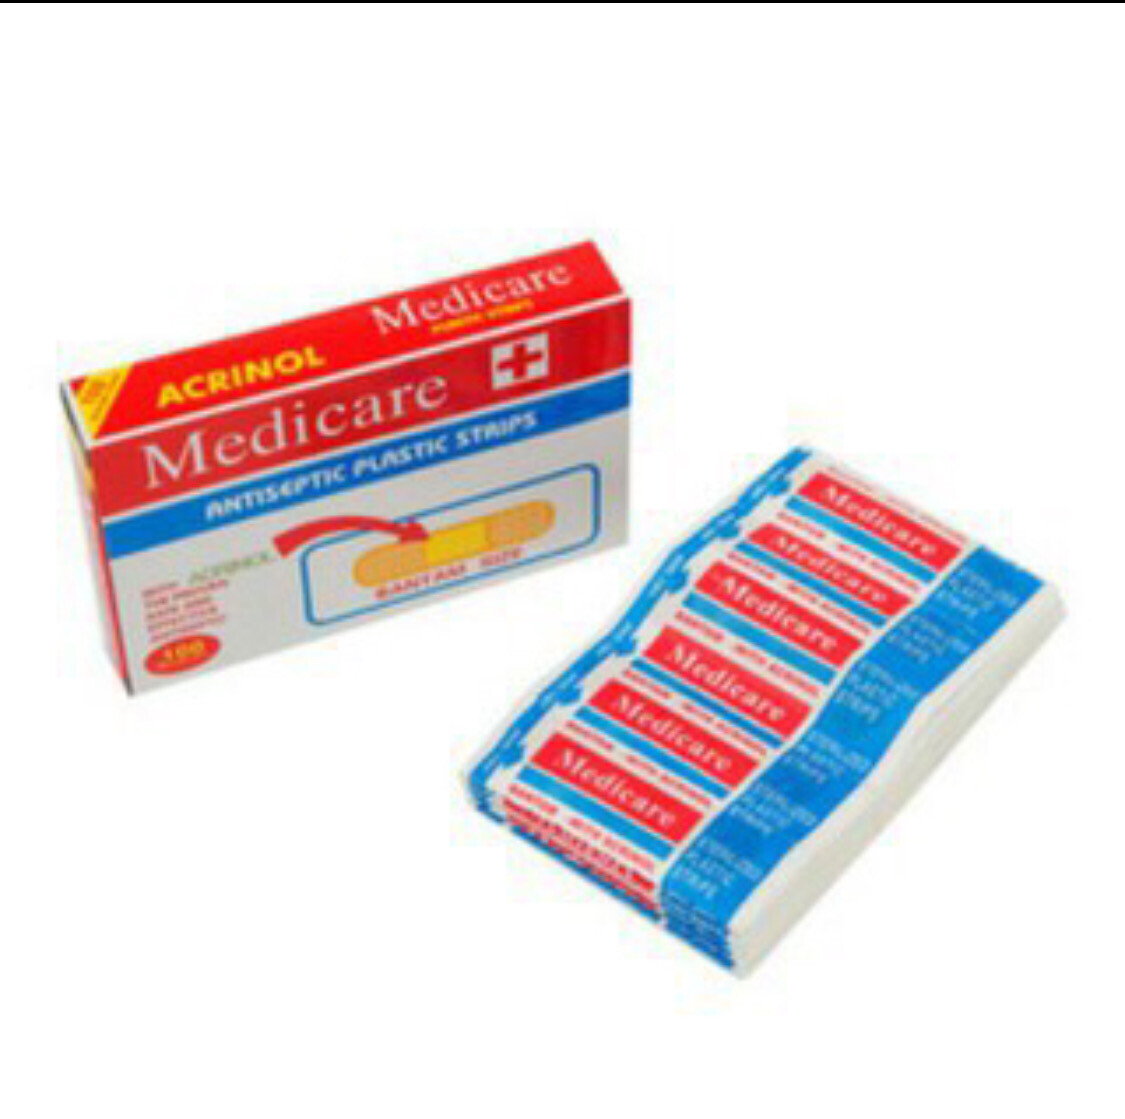 Medicare Antiseptic Plastic Band Aid Strips x 10